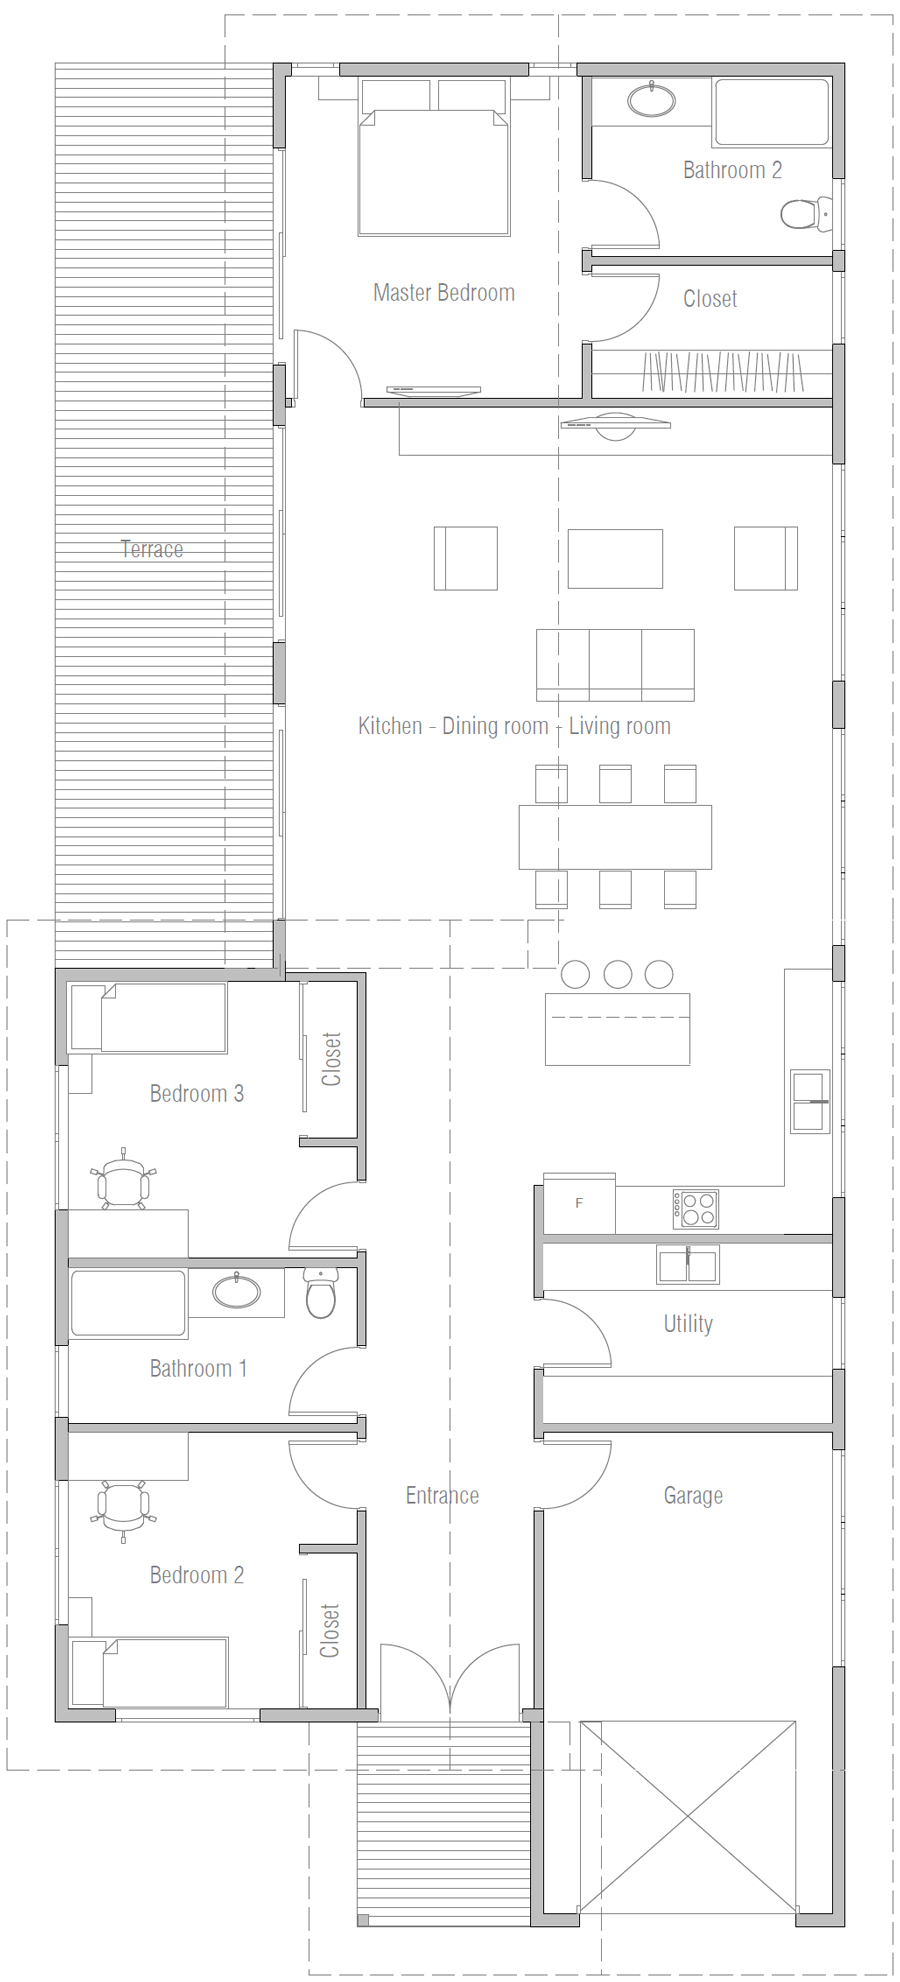 house-plans-2019_20_house_plan_ch603.jpg